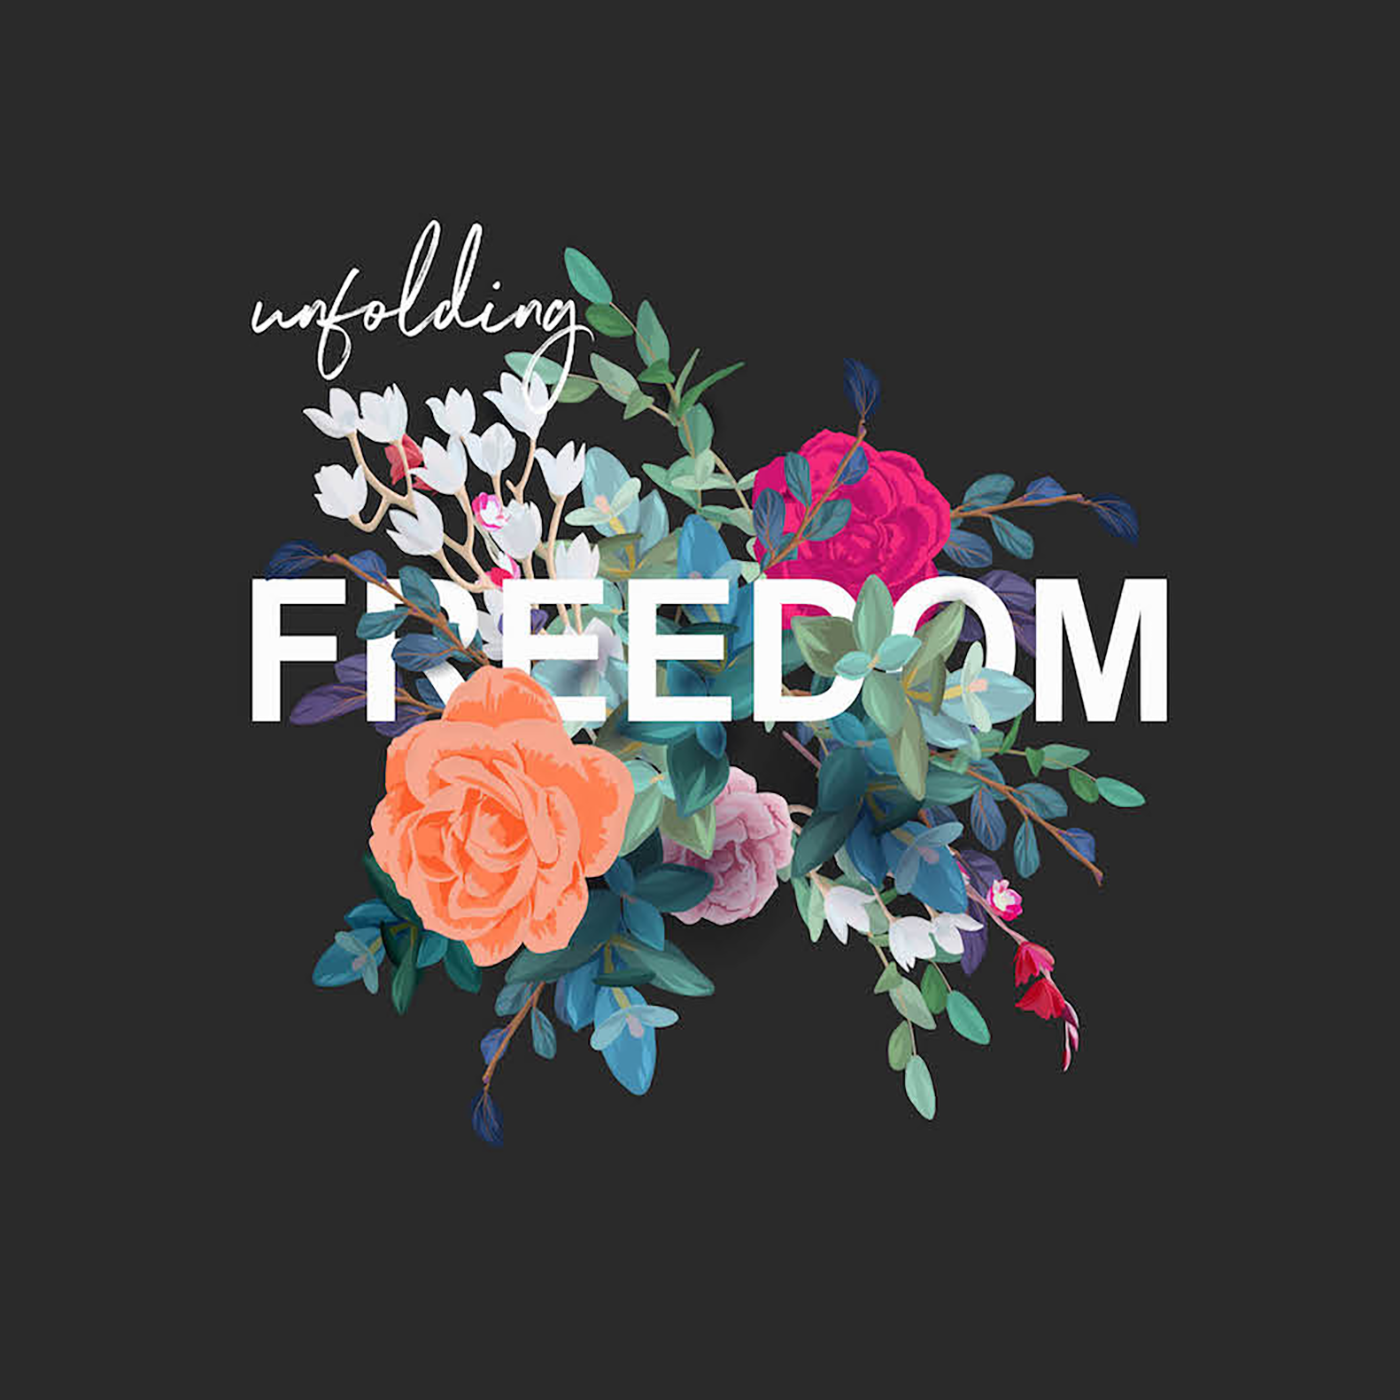 Unfolding Freedom - Easter Sunday - 21 April 2019